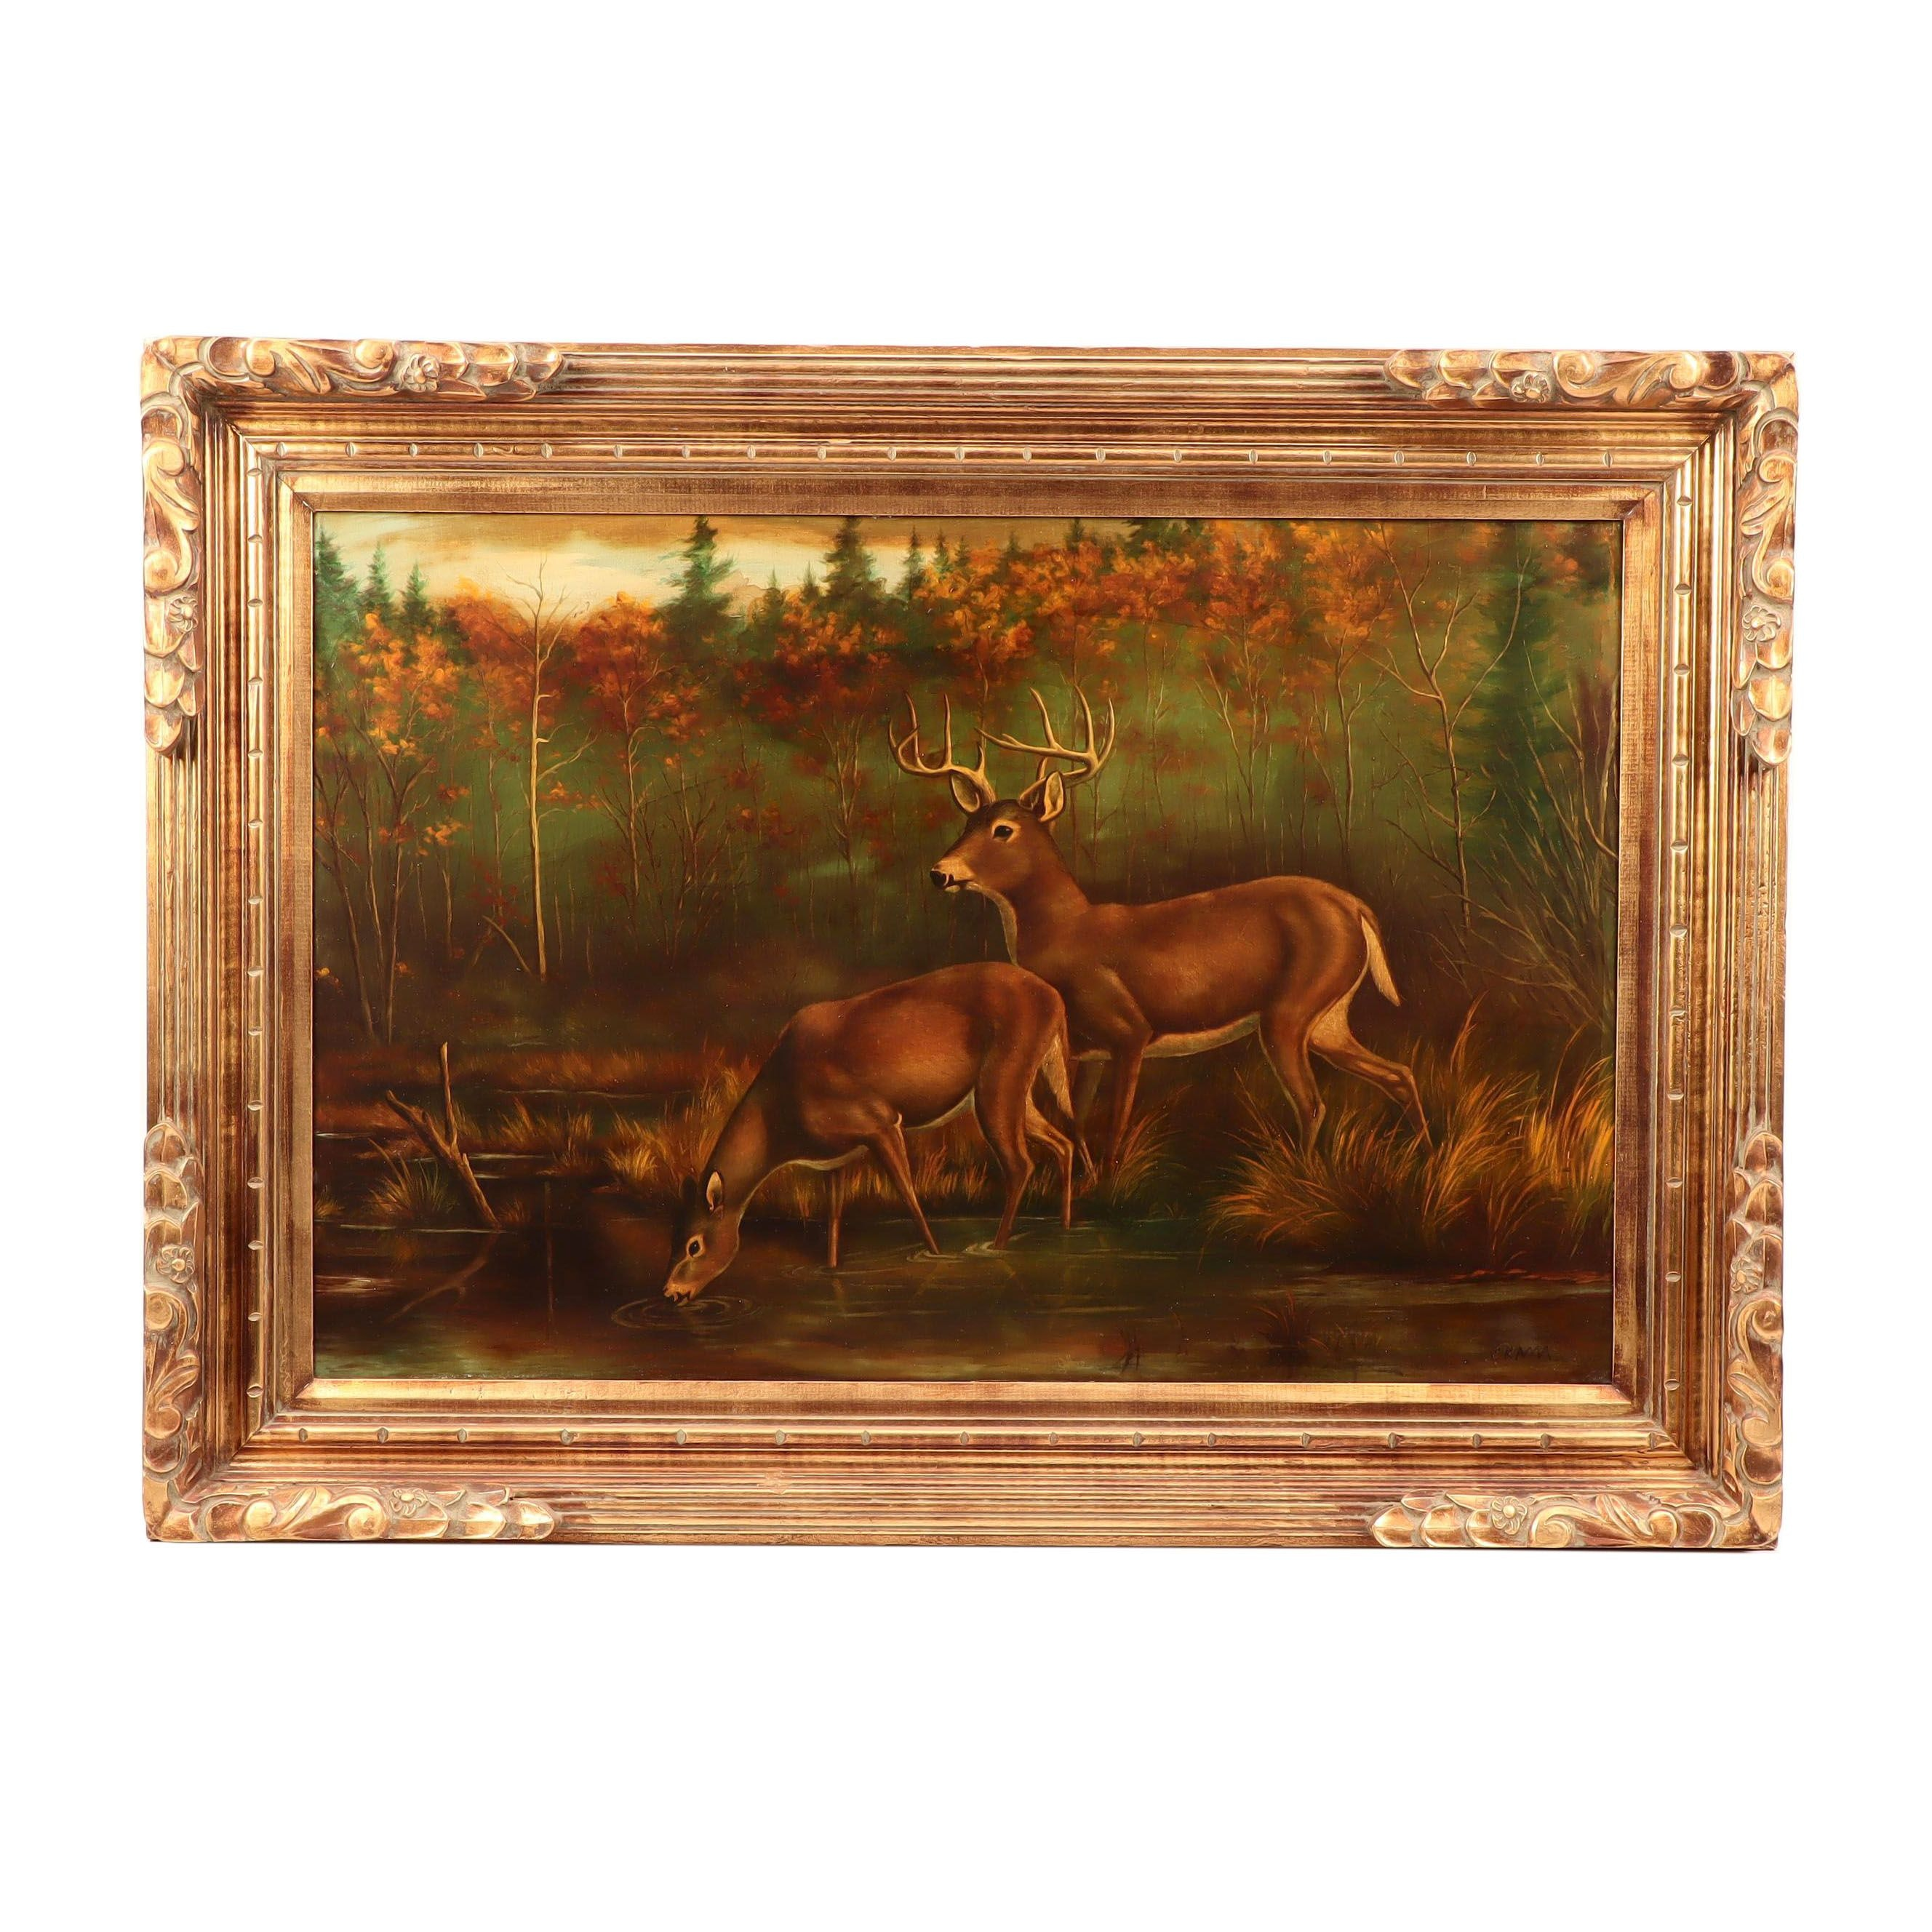 Oil Painting of Deer in a Wooded Landscape